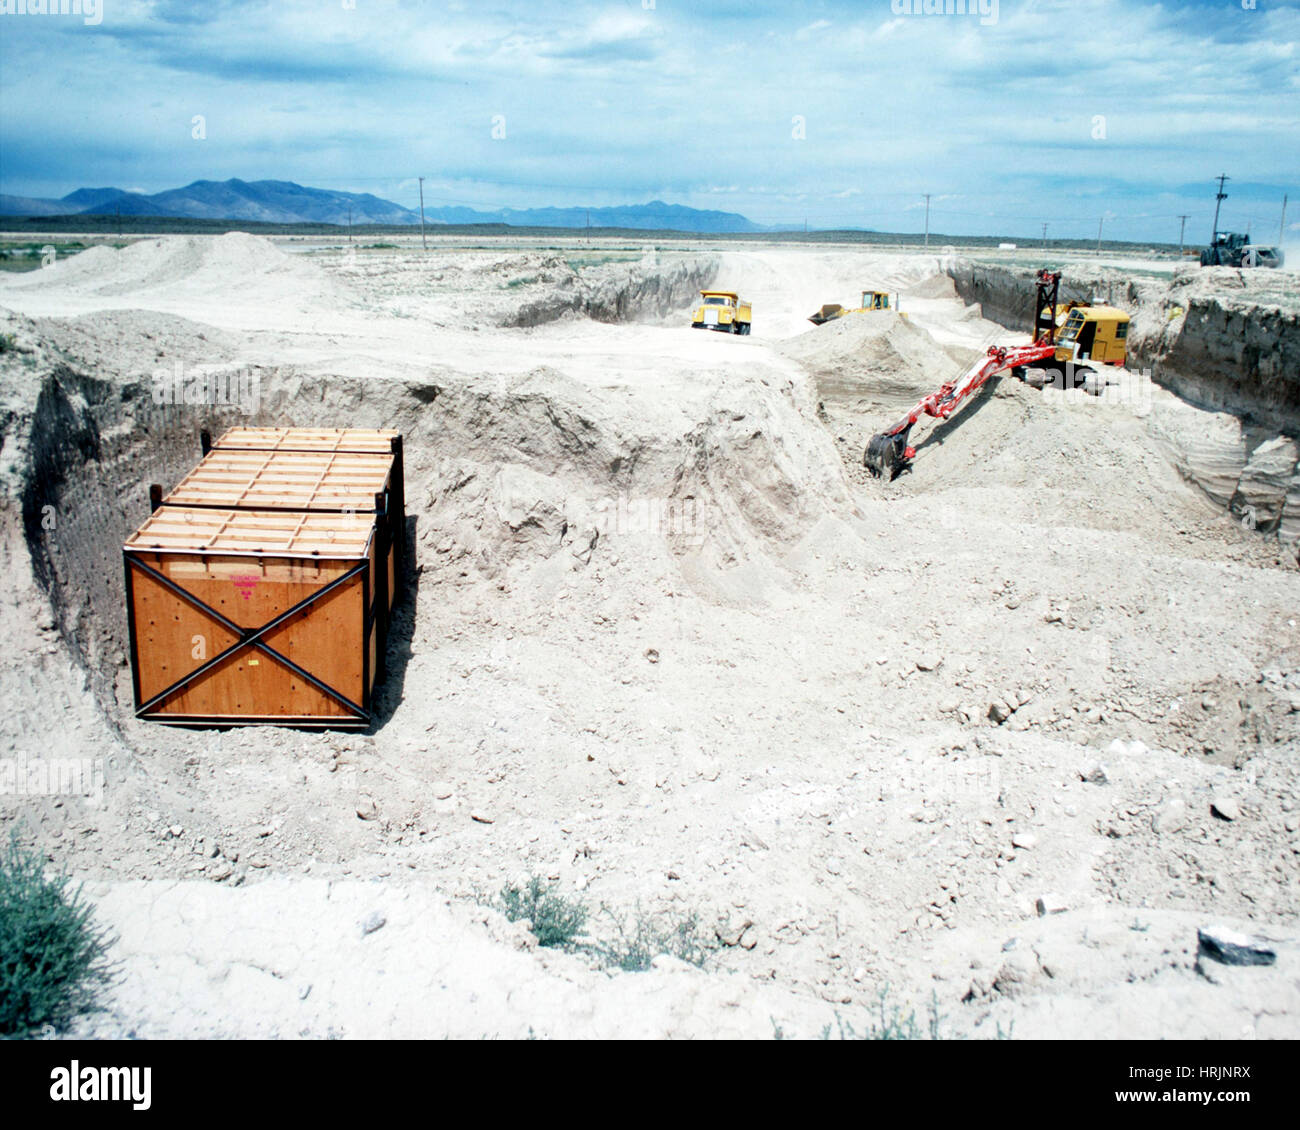 RWMC, Nuclear Waste Burial Site, 2015 - Stock Image